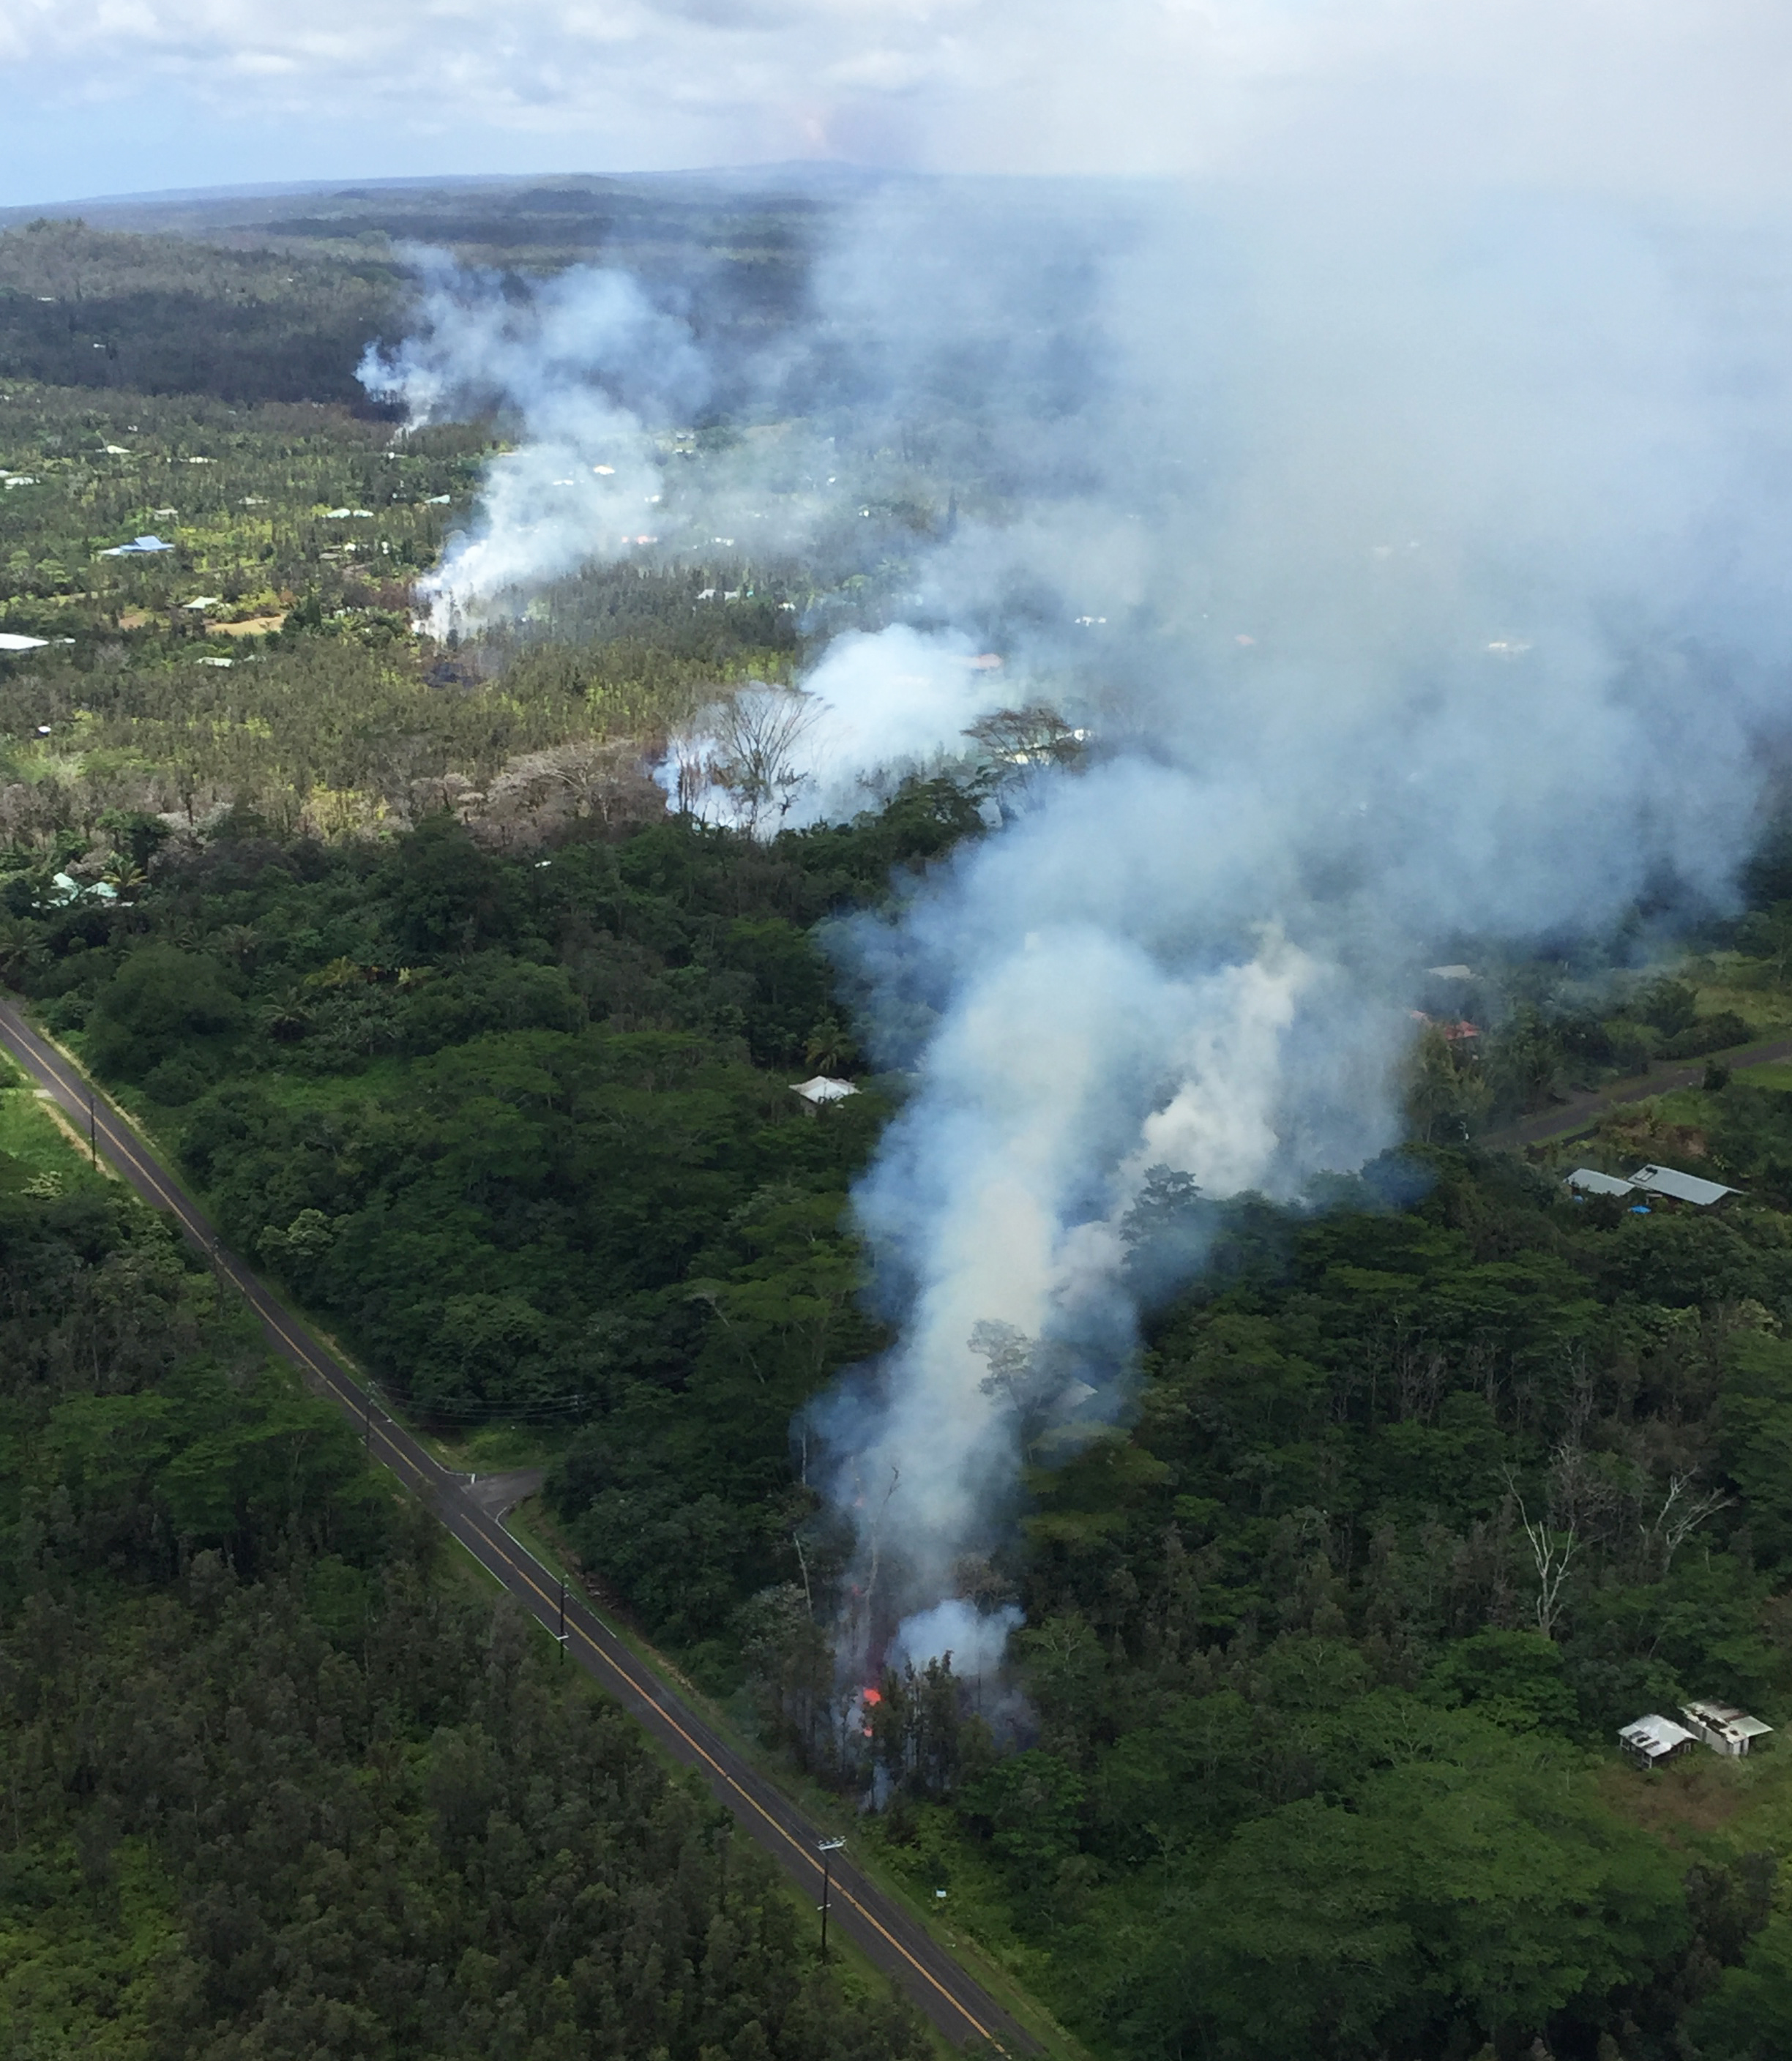 An Intrusion Of Magma Into Kilauea Volcanos Lower East Rift Zone Resulted In Eruption Leilani Estates The Puna District On Island